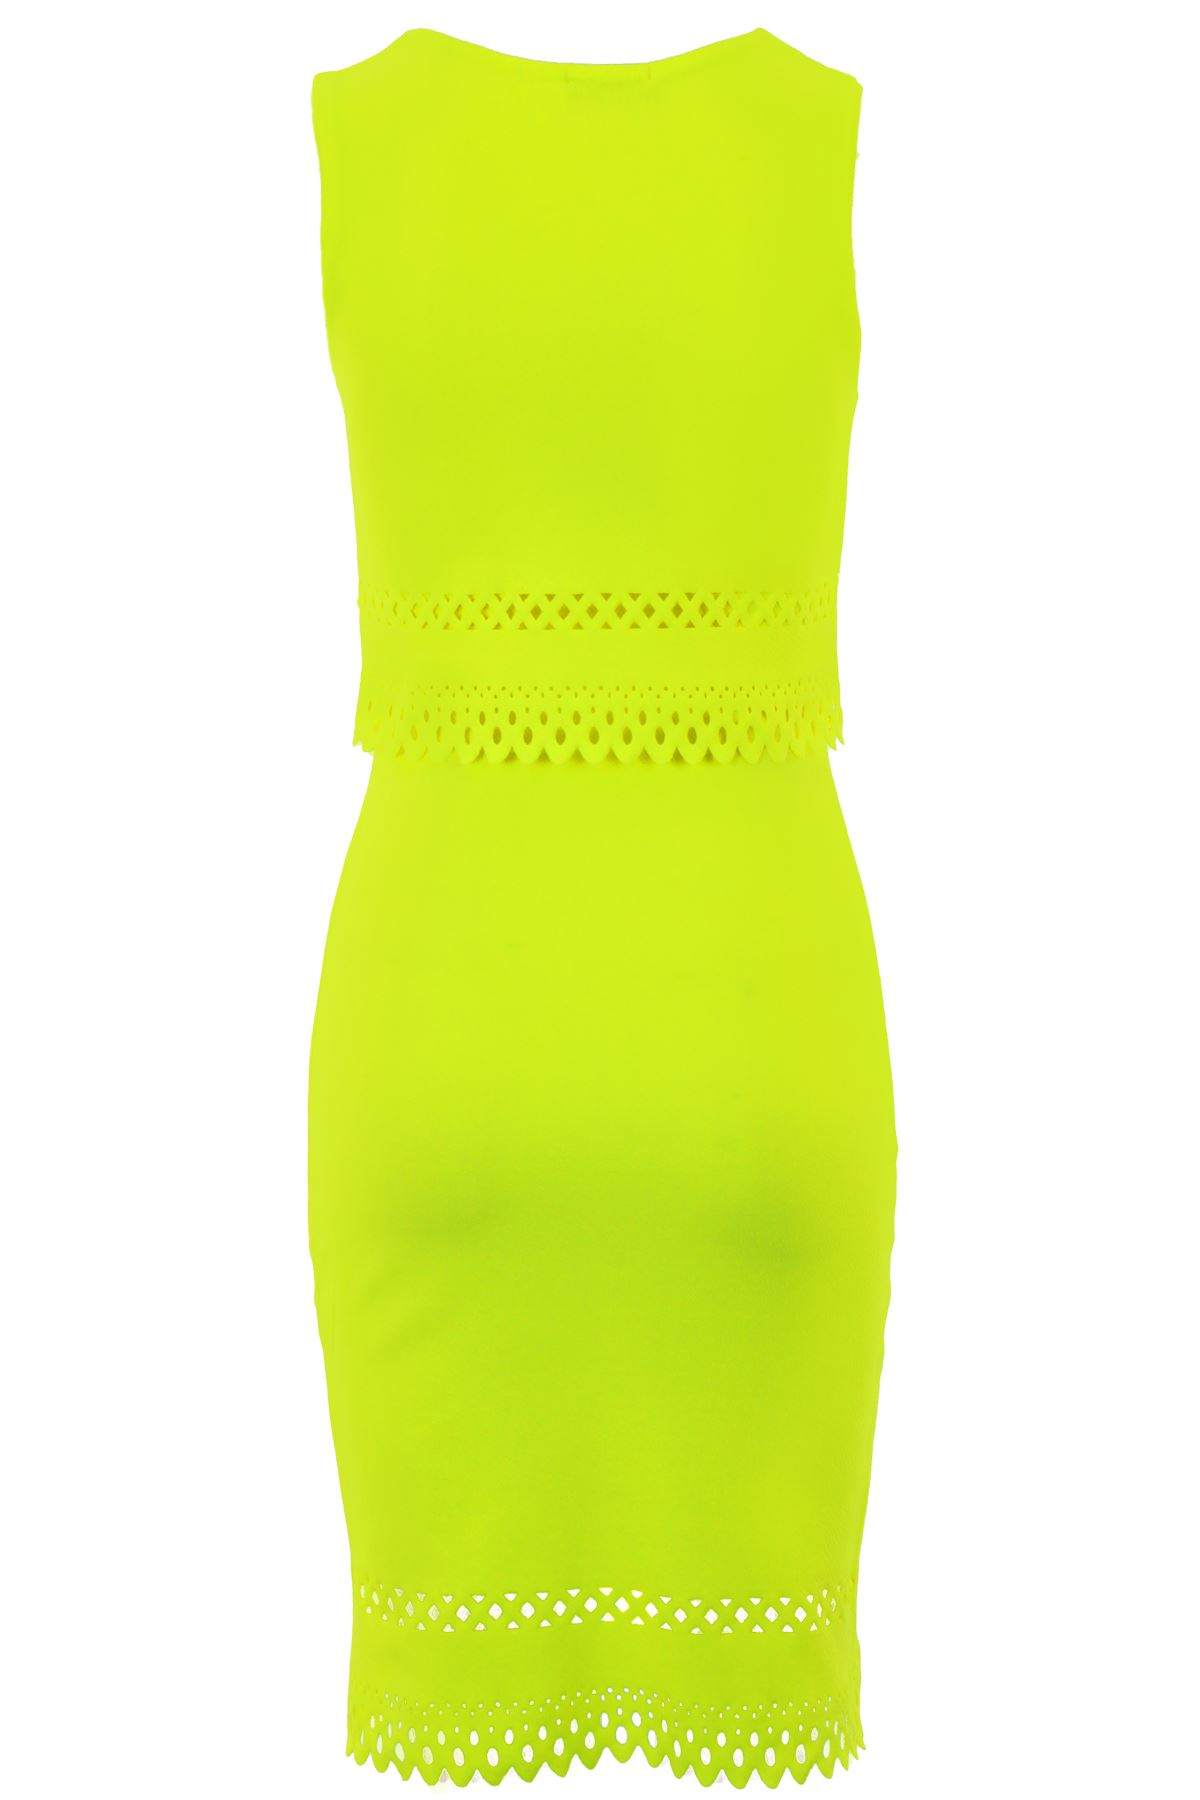 Womens Cut Out Scallop Hem Crepe Overlay Neon Knee Length Bodycon Dress  0b6ae91222